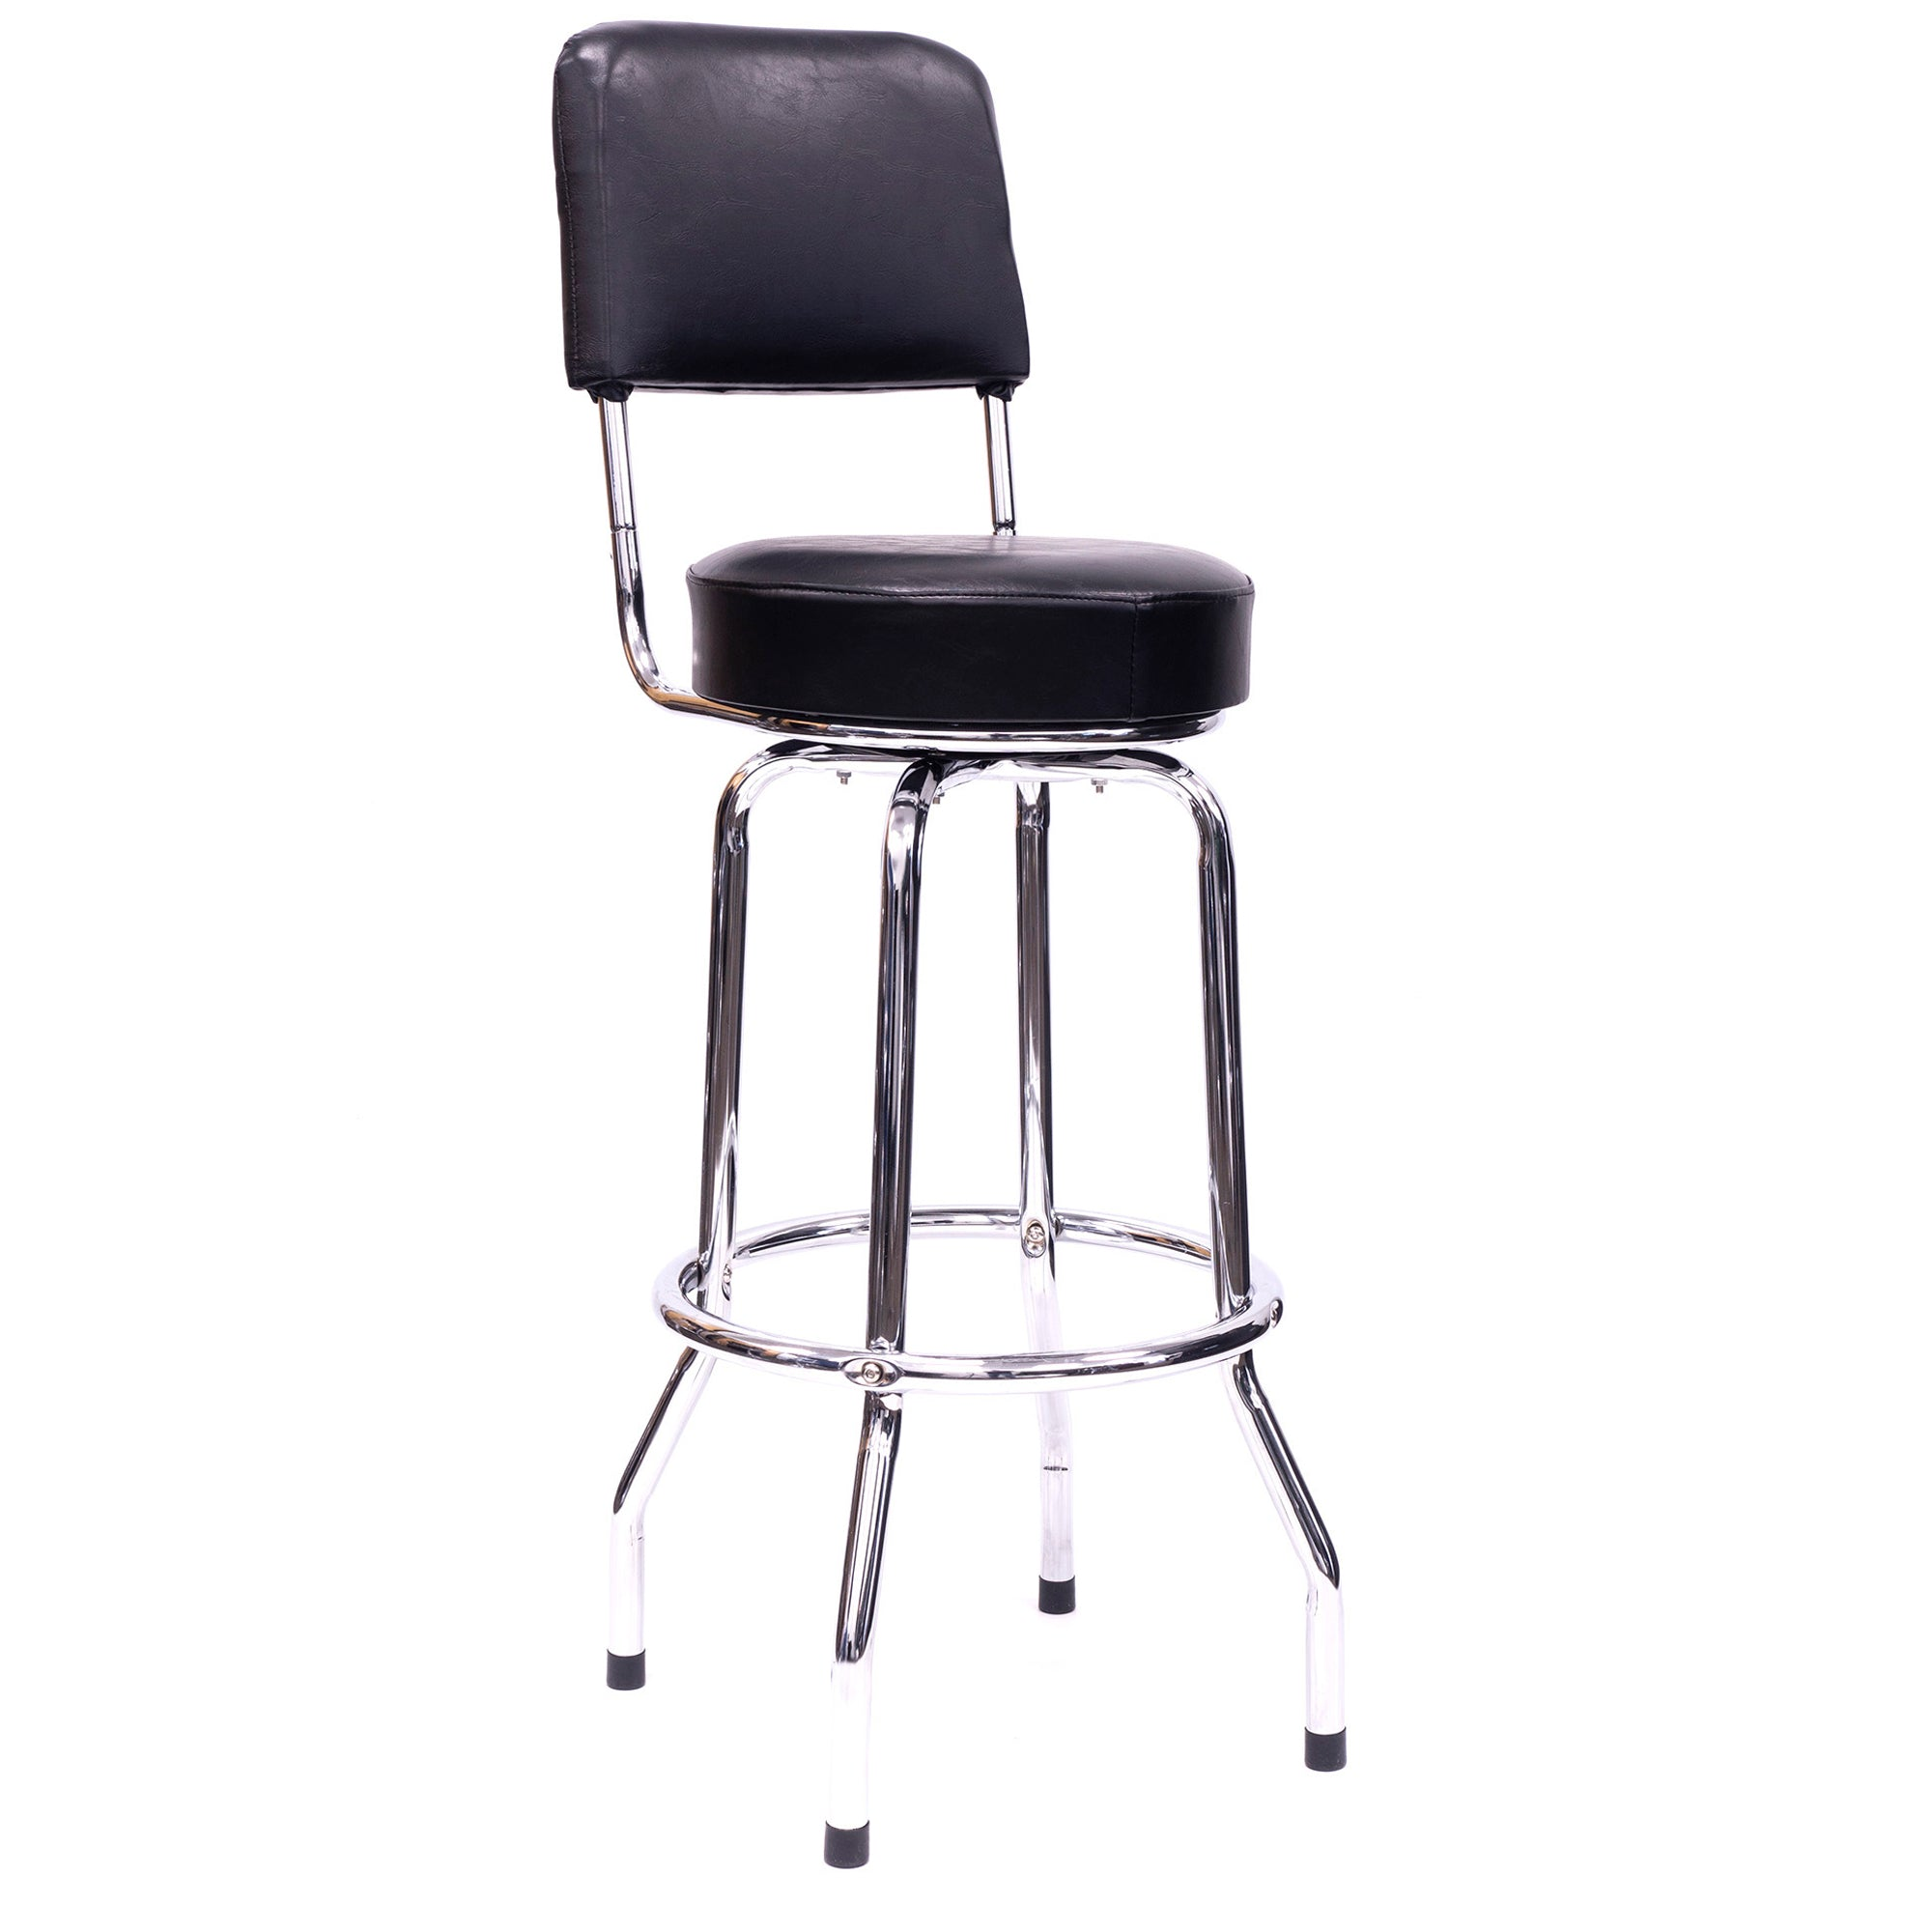 "30.5"" Full Swivel Bar Stool w/Backrest"